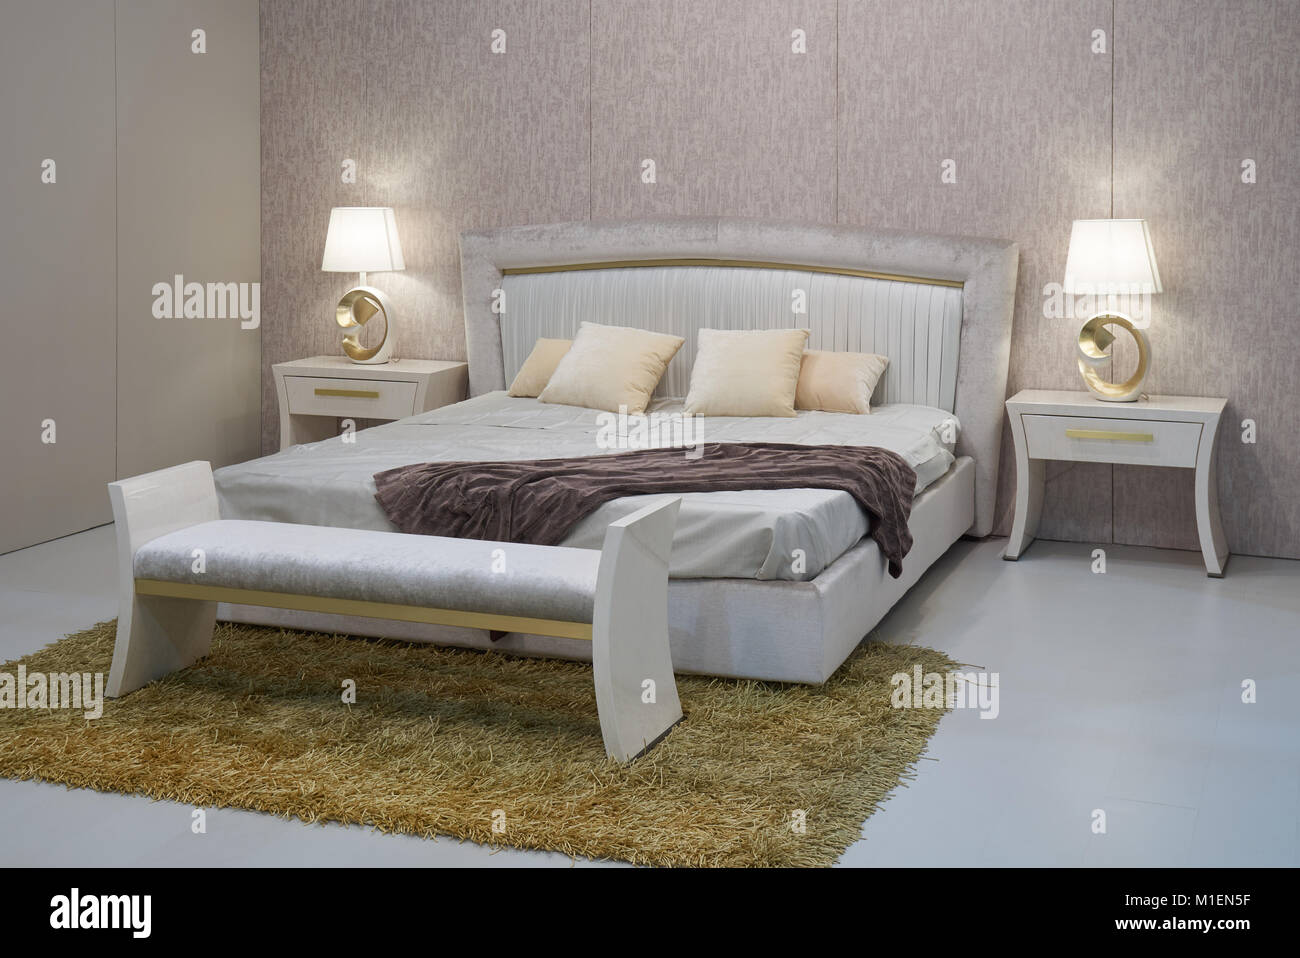 Beautiful Modern Bedroom With New Comfortable Double Bed